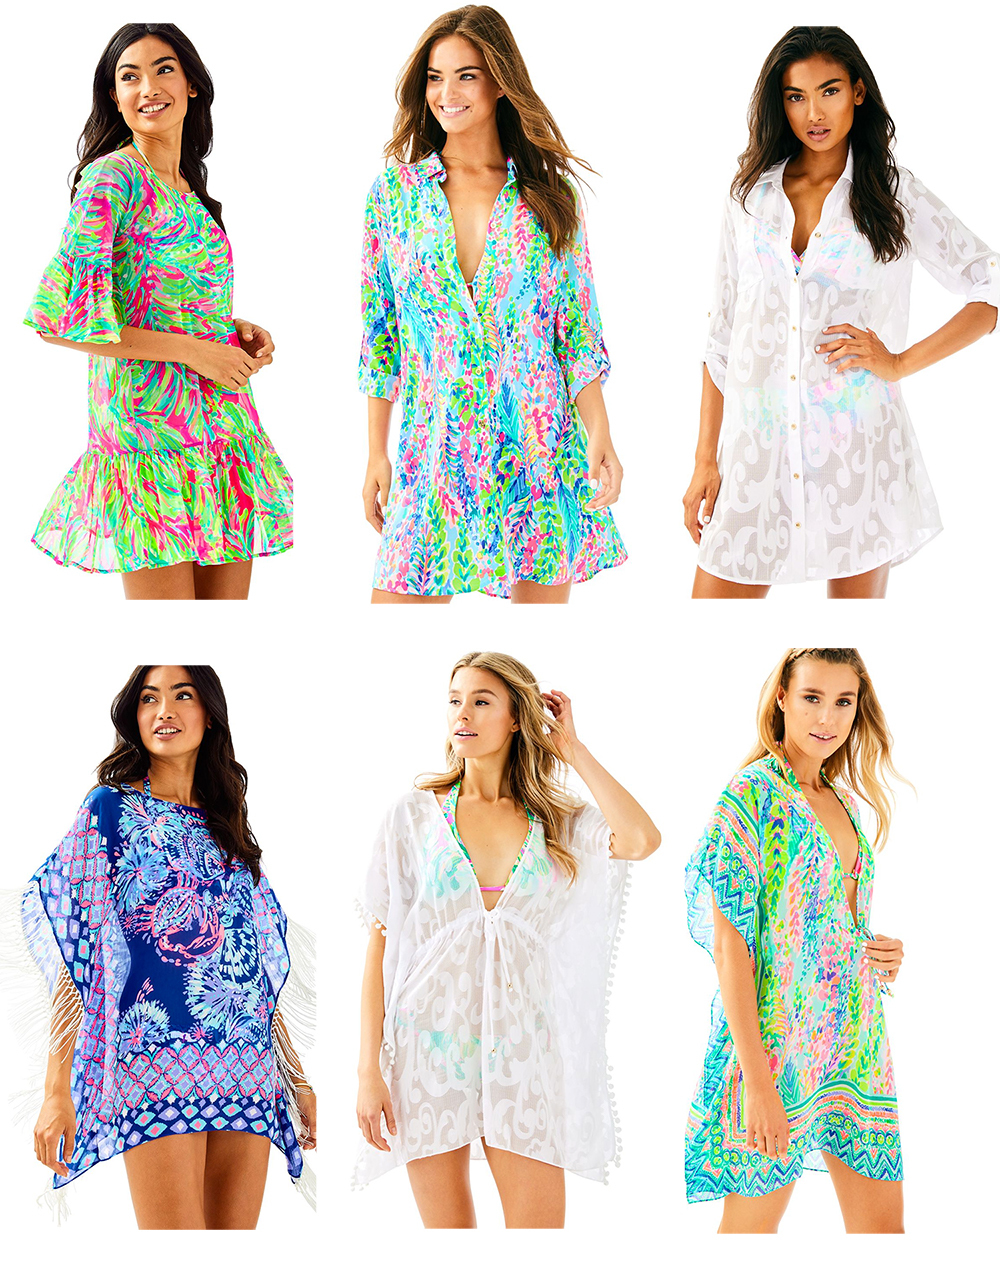 1519086297 763 Currently Coveting Top Picks from the Lilly Pulitzer Swim Collection